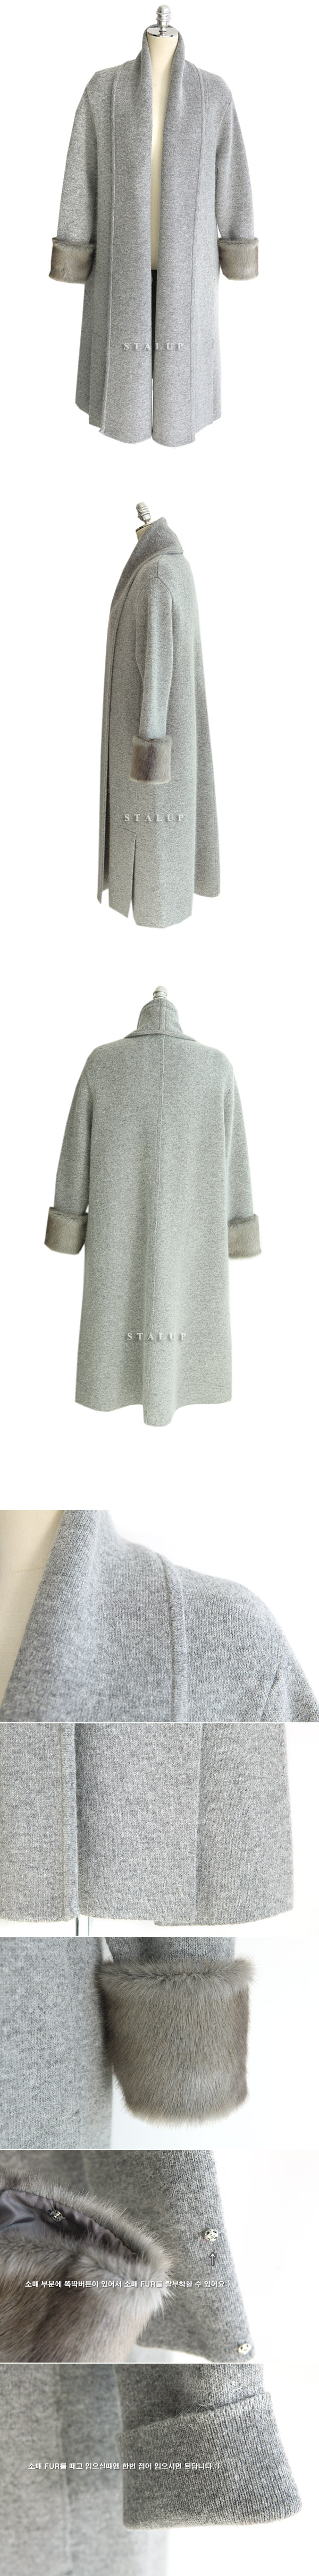 Maxma knit coat